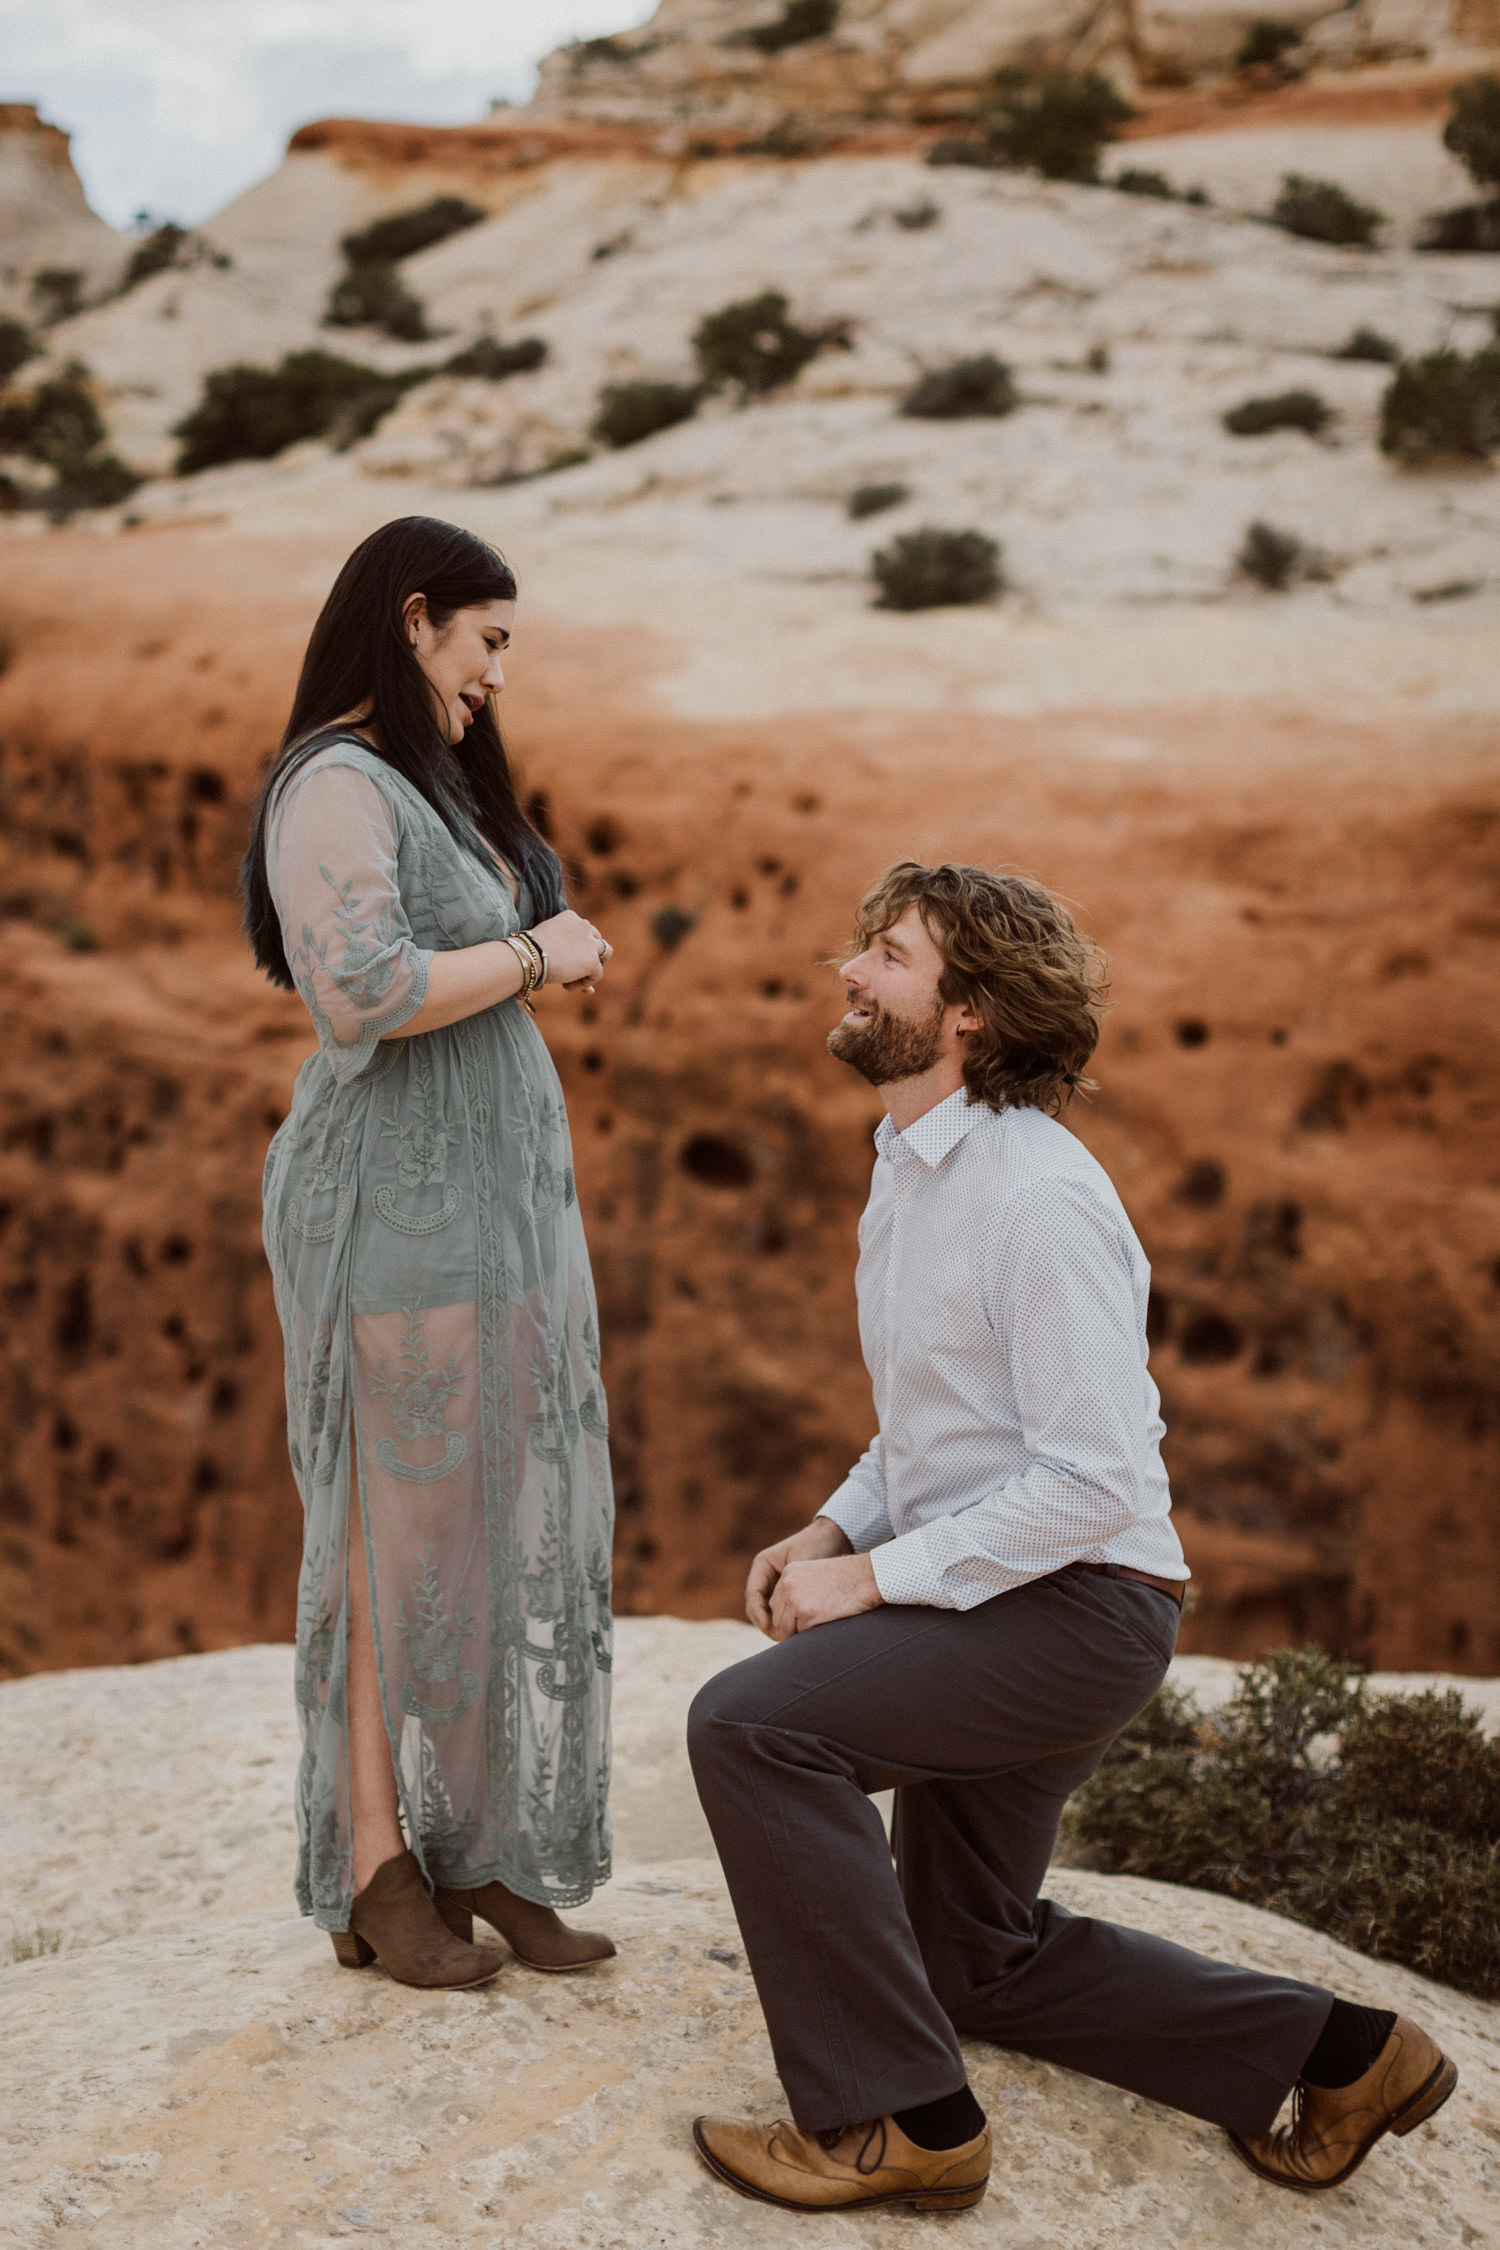 capitol-reef-national-park-engagements-16.jpg